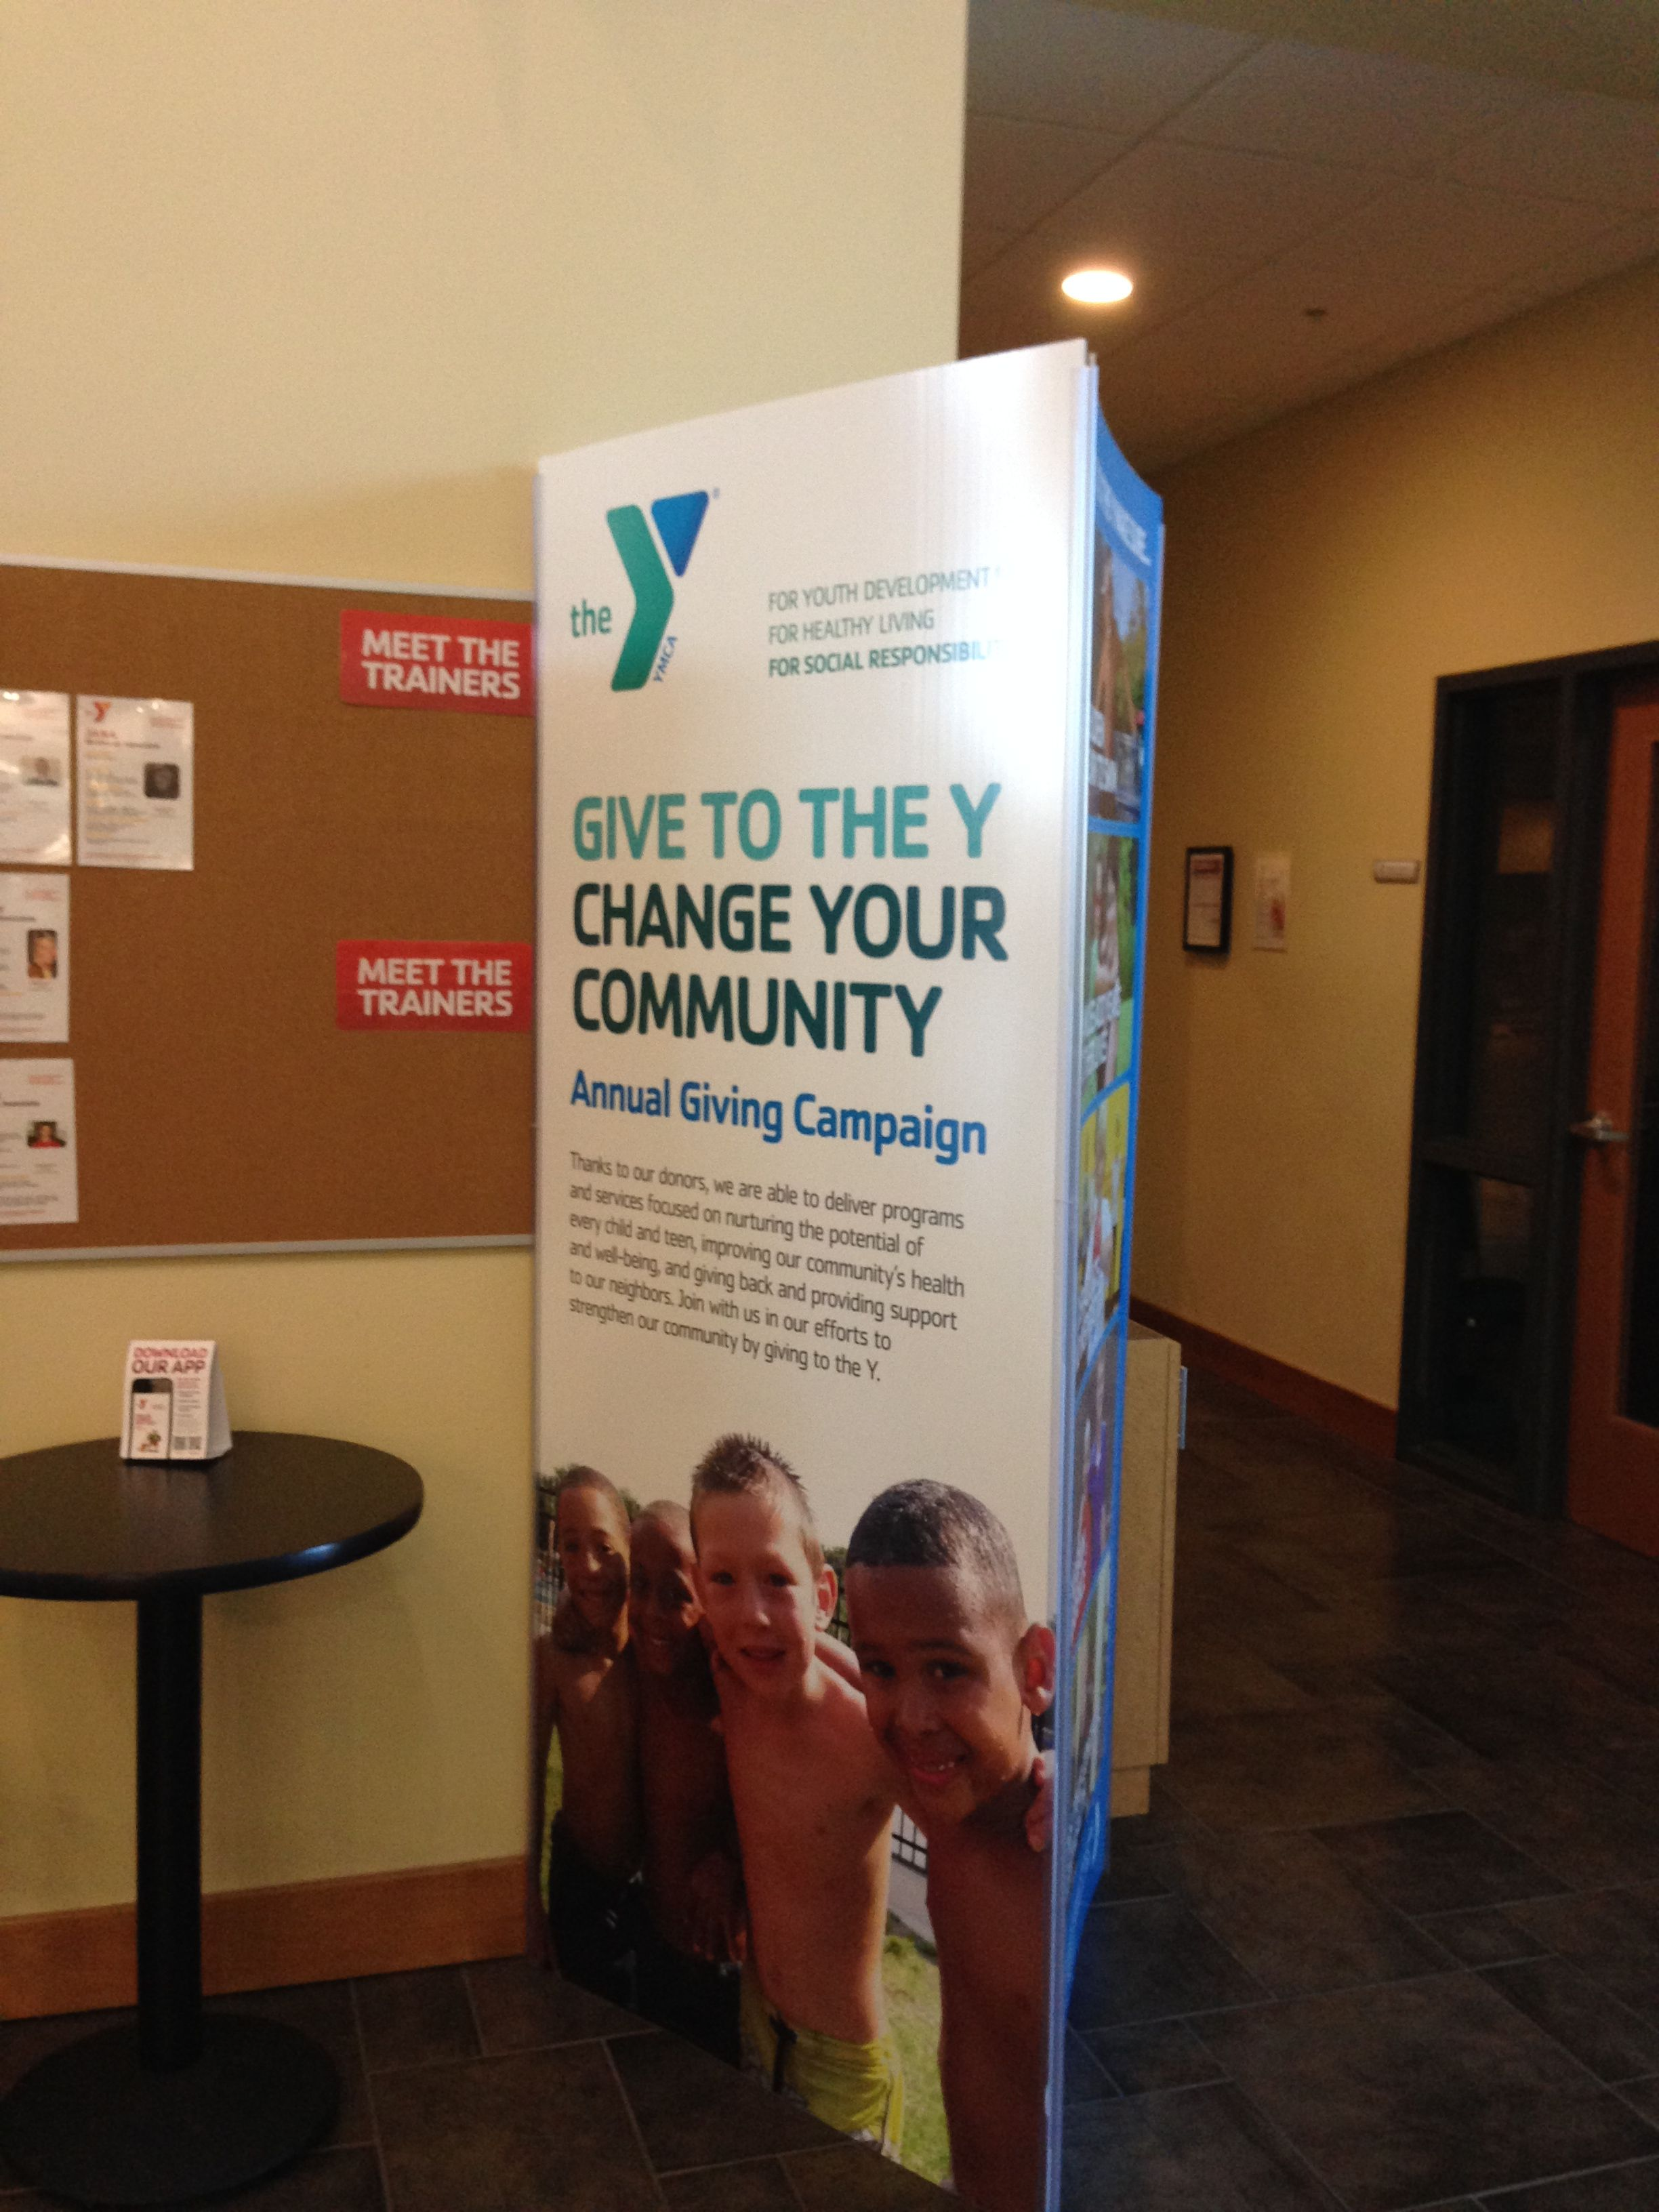 Pin by Megan Clemmons on YMCA | Pinterest | Fundraising